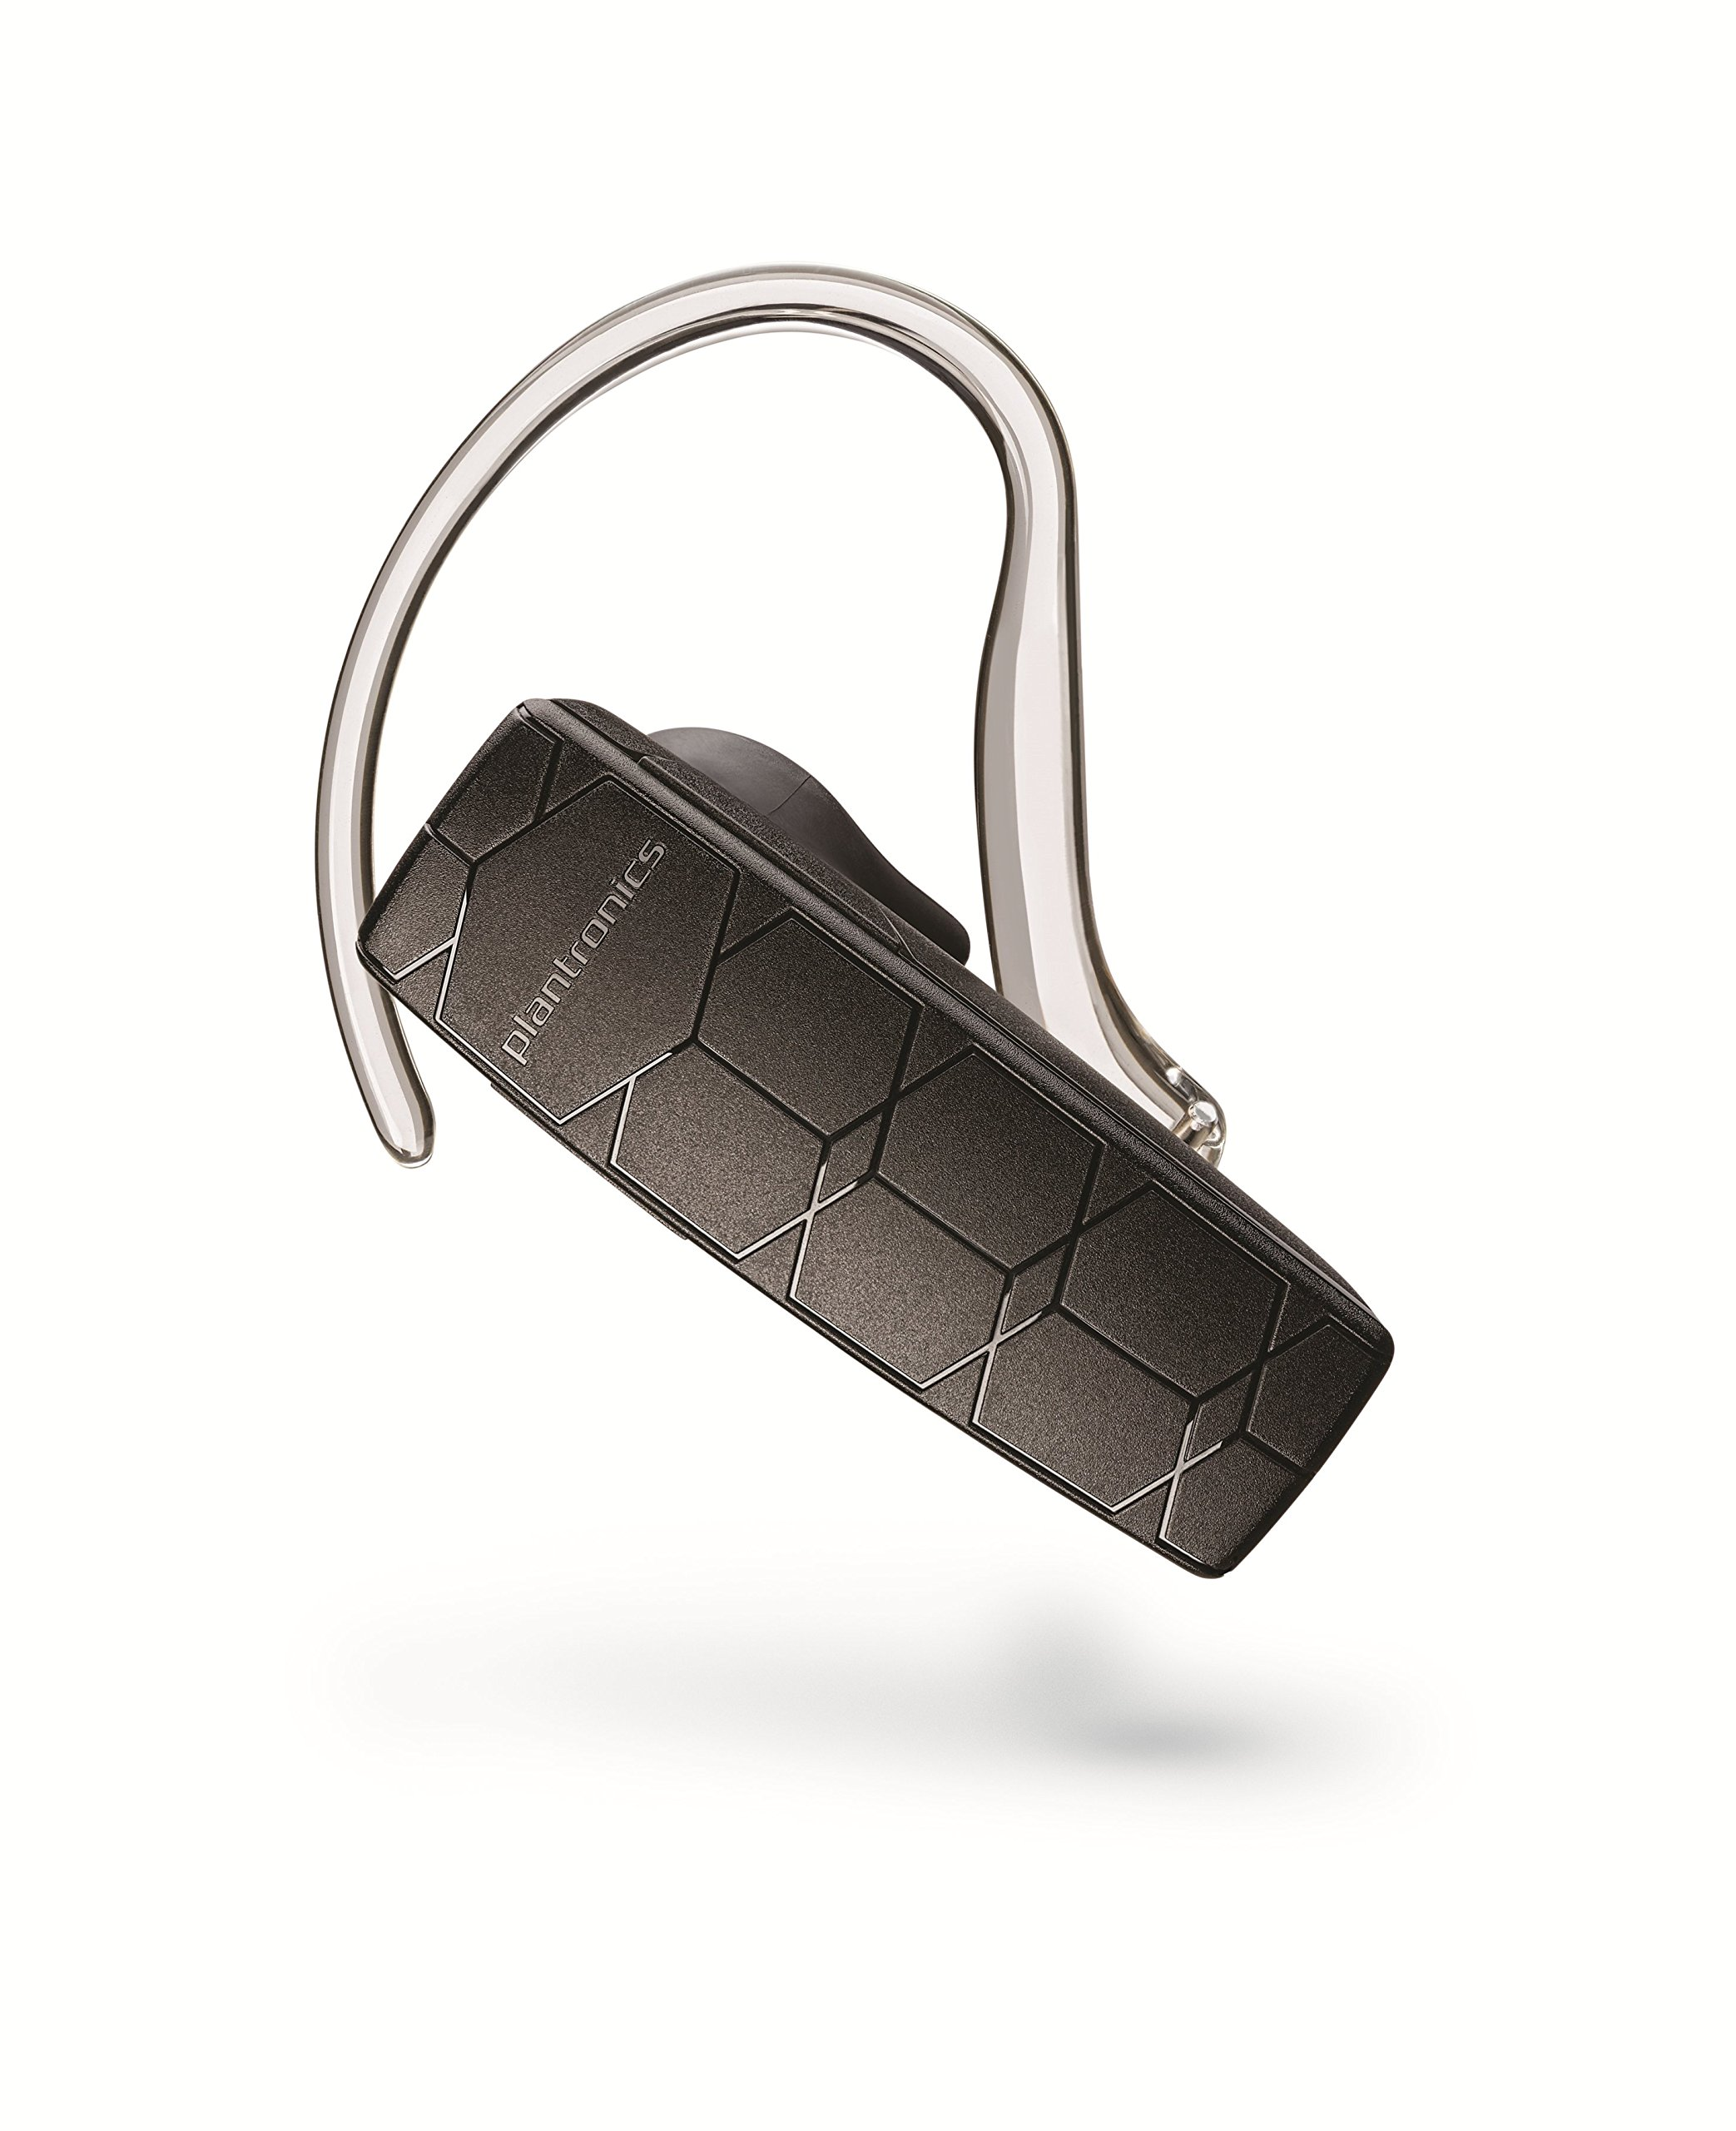 Plantronics Explorer 50 Bluetooth Headset - Retail Packaging - Black - 202340-21 by Plantronics